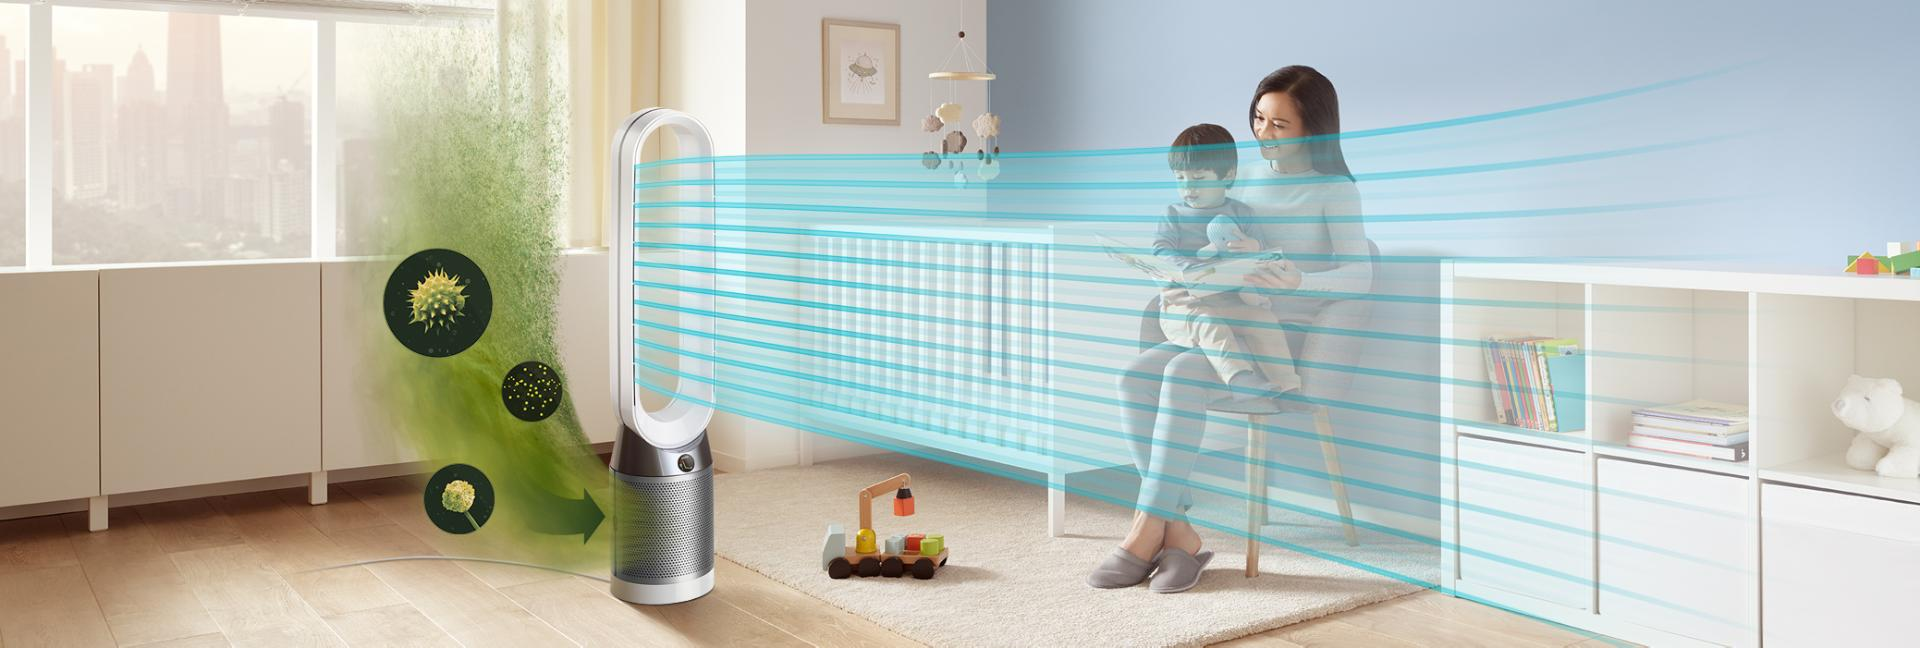 Dyson Pure Cool™ Advanced Technology Tower air flow in a room.